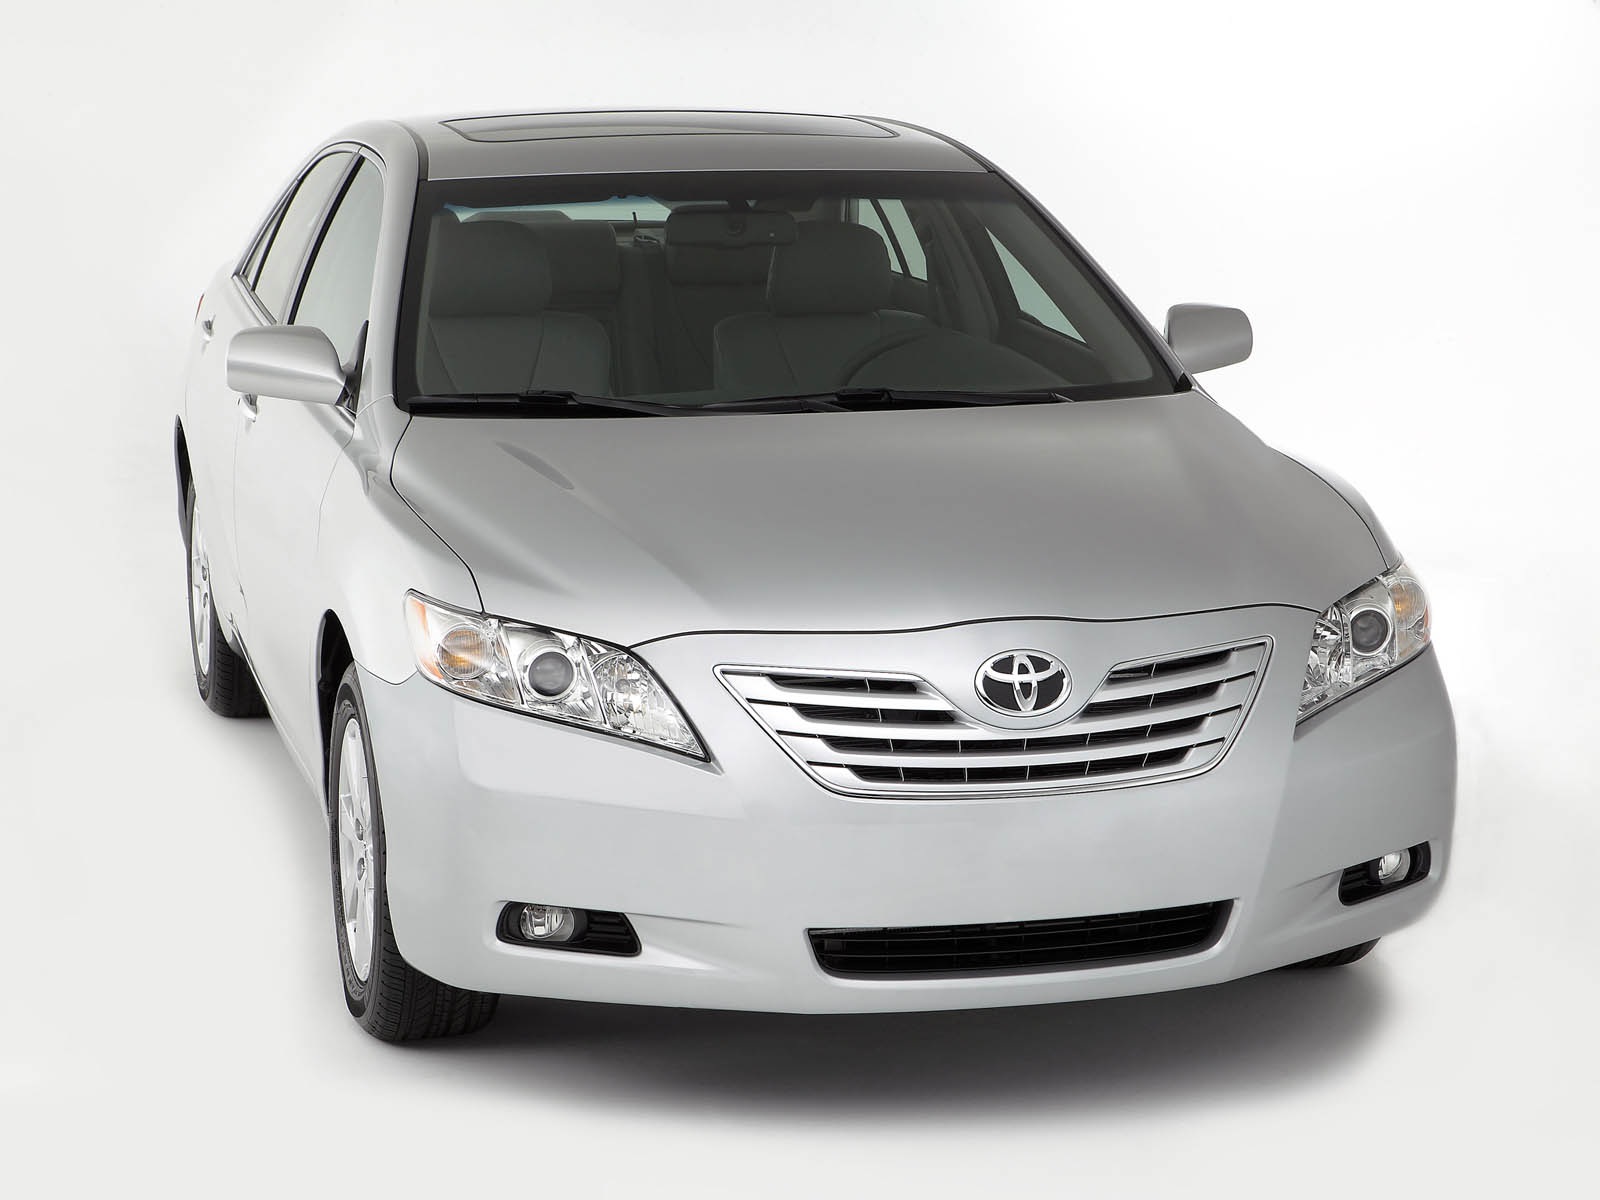 wallpapers toyota camry car wallpapers. Black Bedroom Furniture Sets. Home Design Ideas